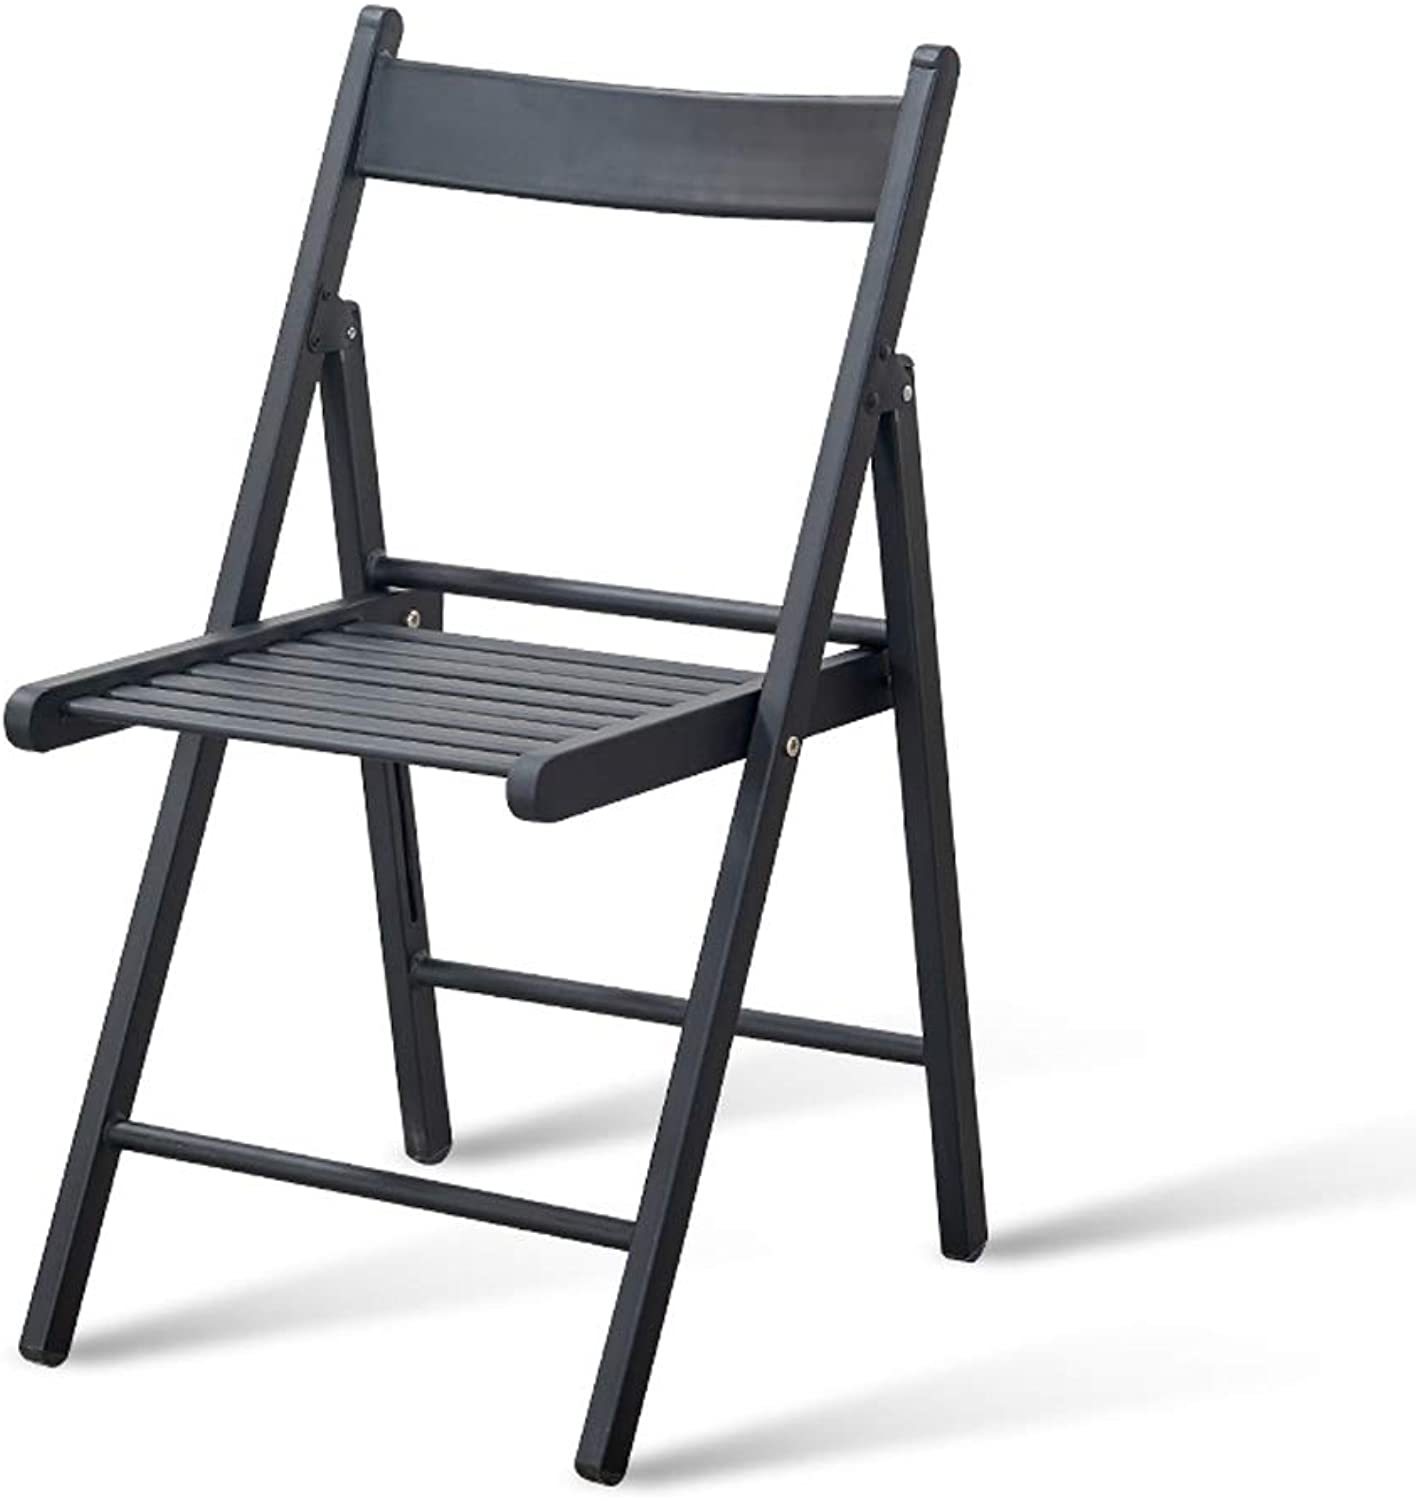 SYFO Chair Simple Wrought Iron Back Chair Folding Metal Chair Leisure Dining Table Chair Metal Stool Stool